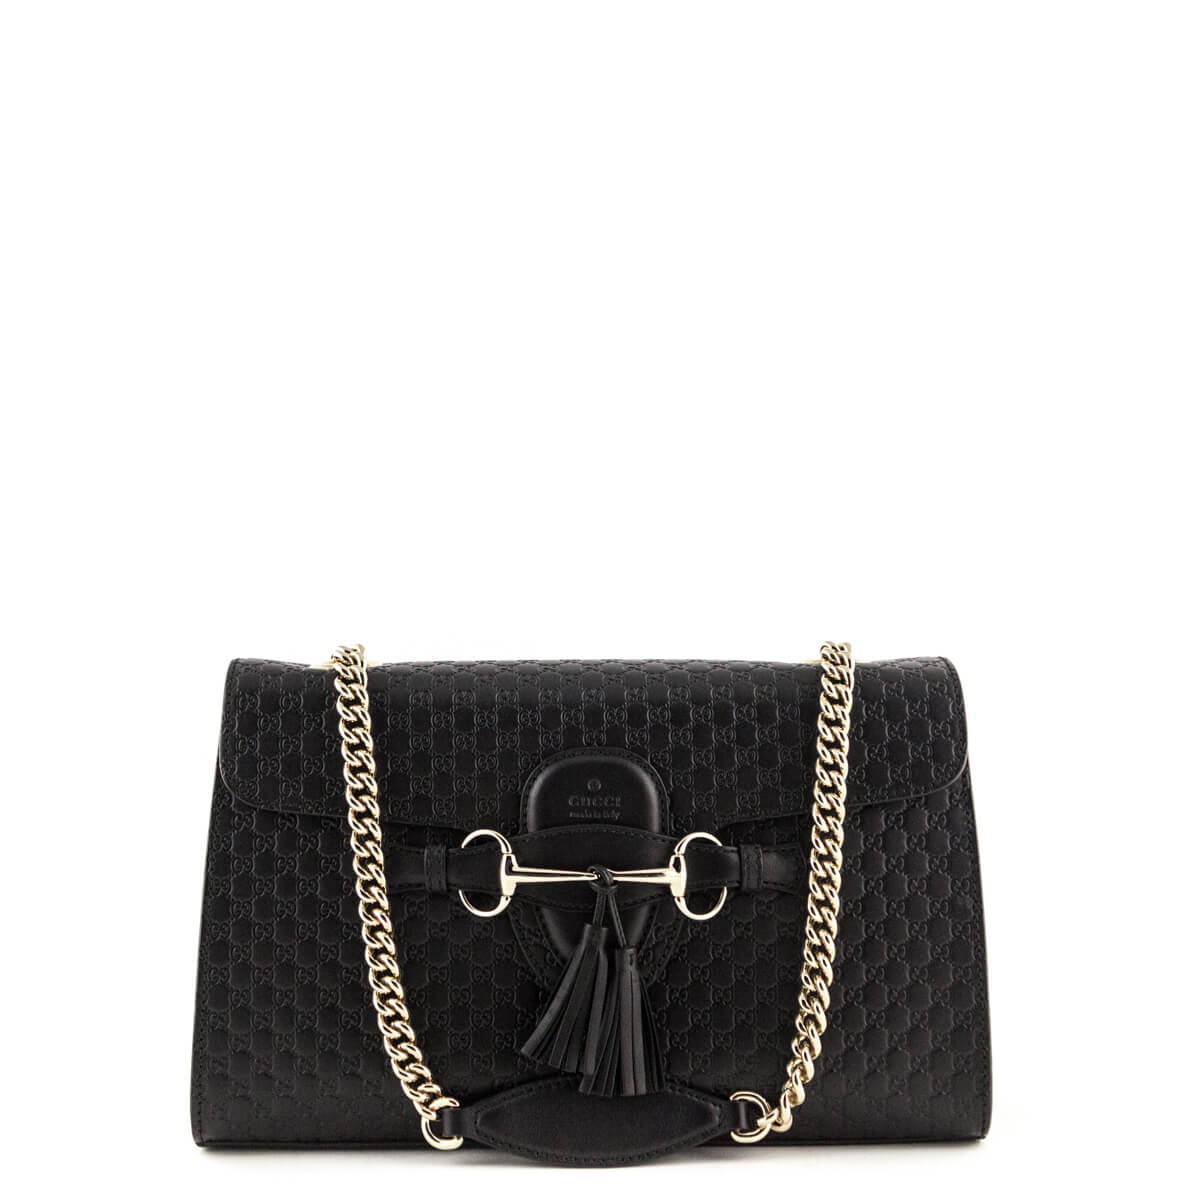 54a047c35864 Gucci Black Emily Guccissima Shoulder Bag - LOVE that BAG - Preowned  Authentic Designer Handbags ...